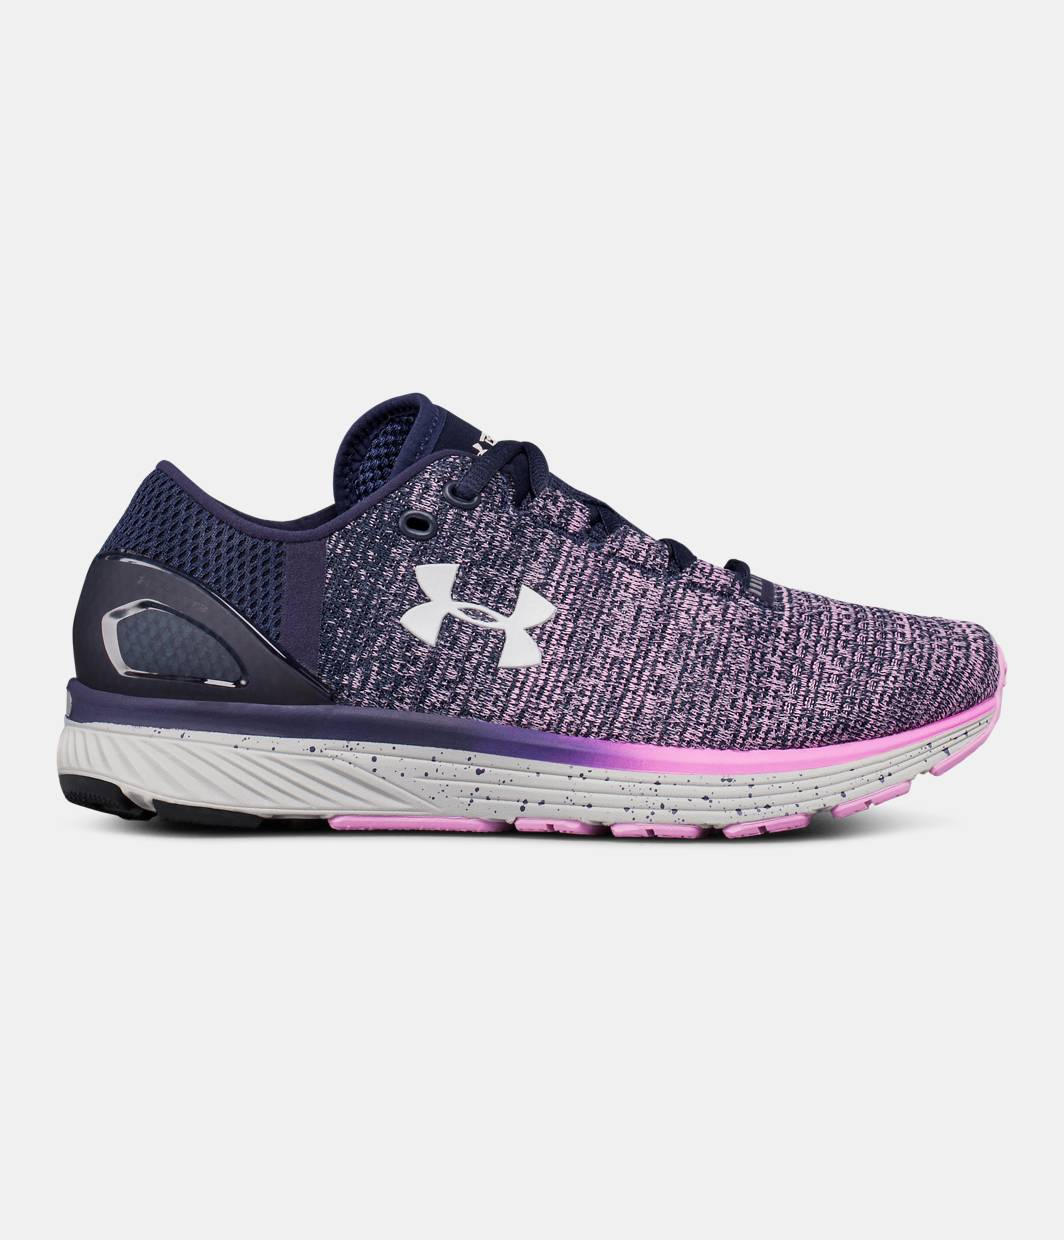 promo code d3abd 46a7f Women s UA Charged Bandit 3 Running Shoes 3 Colors Available  56.99 to   64.99